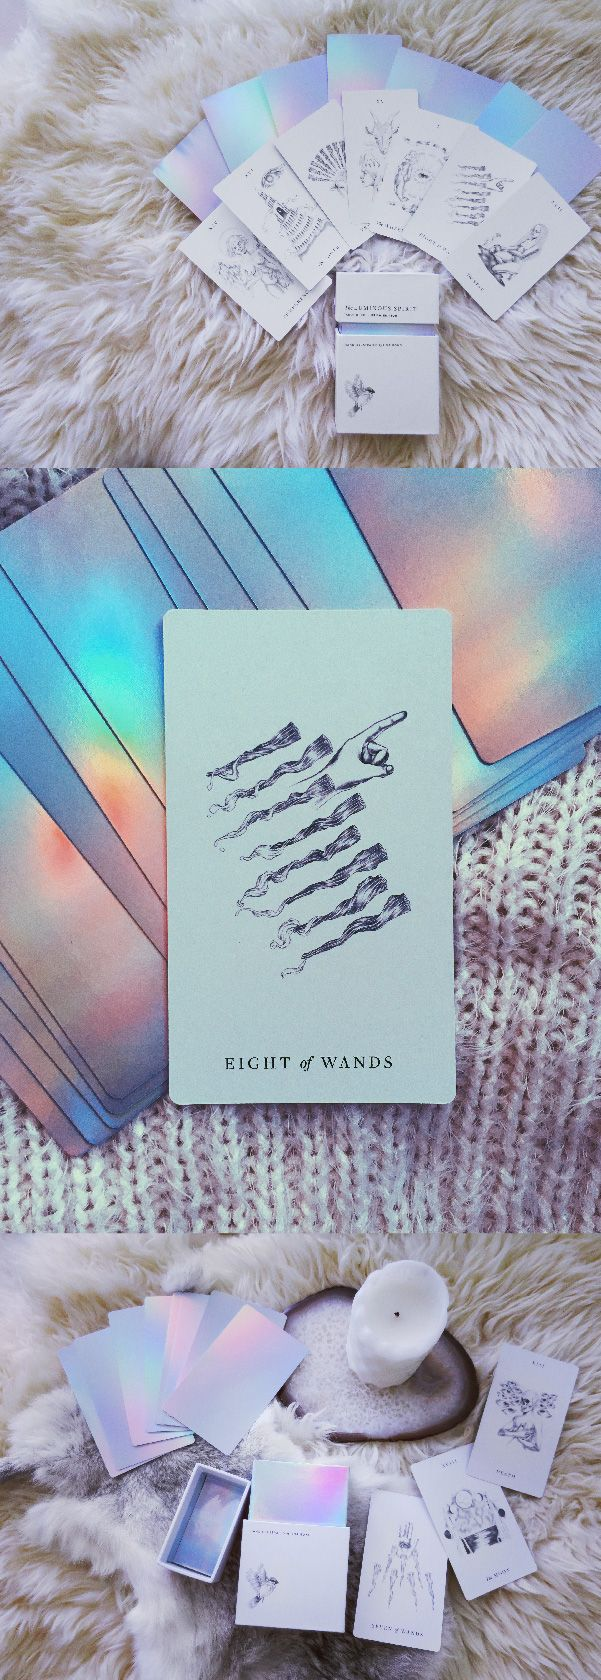 """I've collected tarot decks for years, and lately I'm drawn to elegant, minimalist imagery. This deck is gorgeous, and the readings I've done with it really feel deep."" - Jayde"